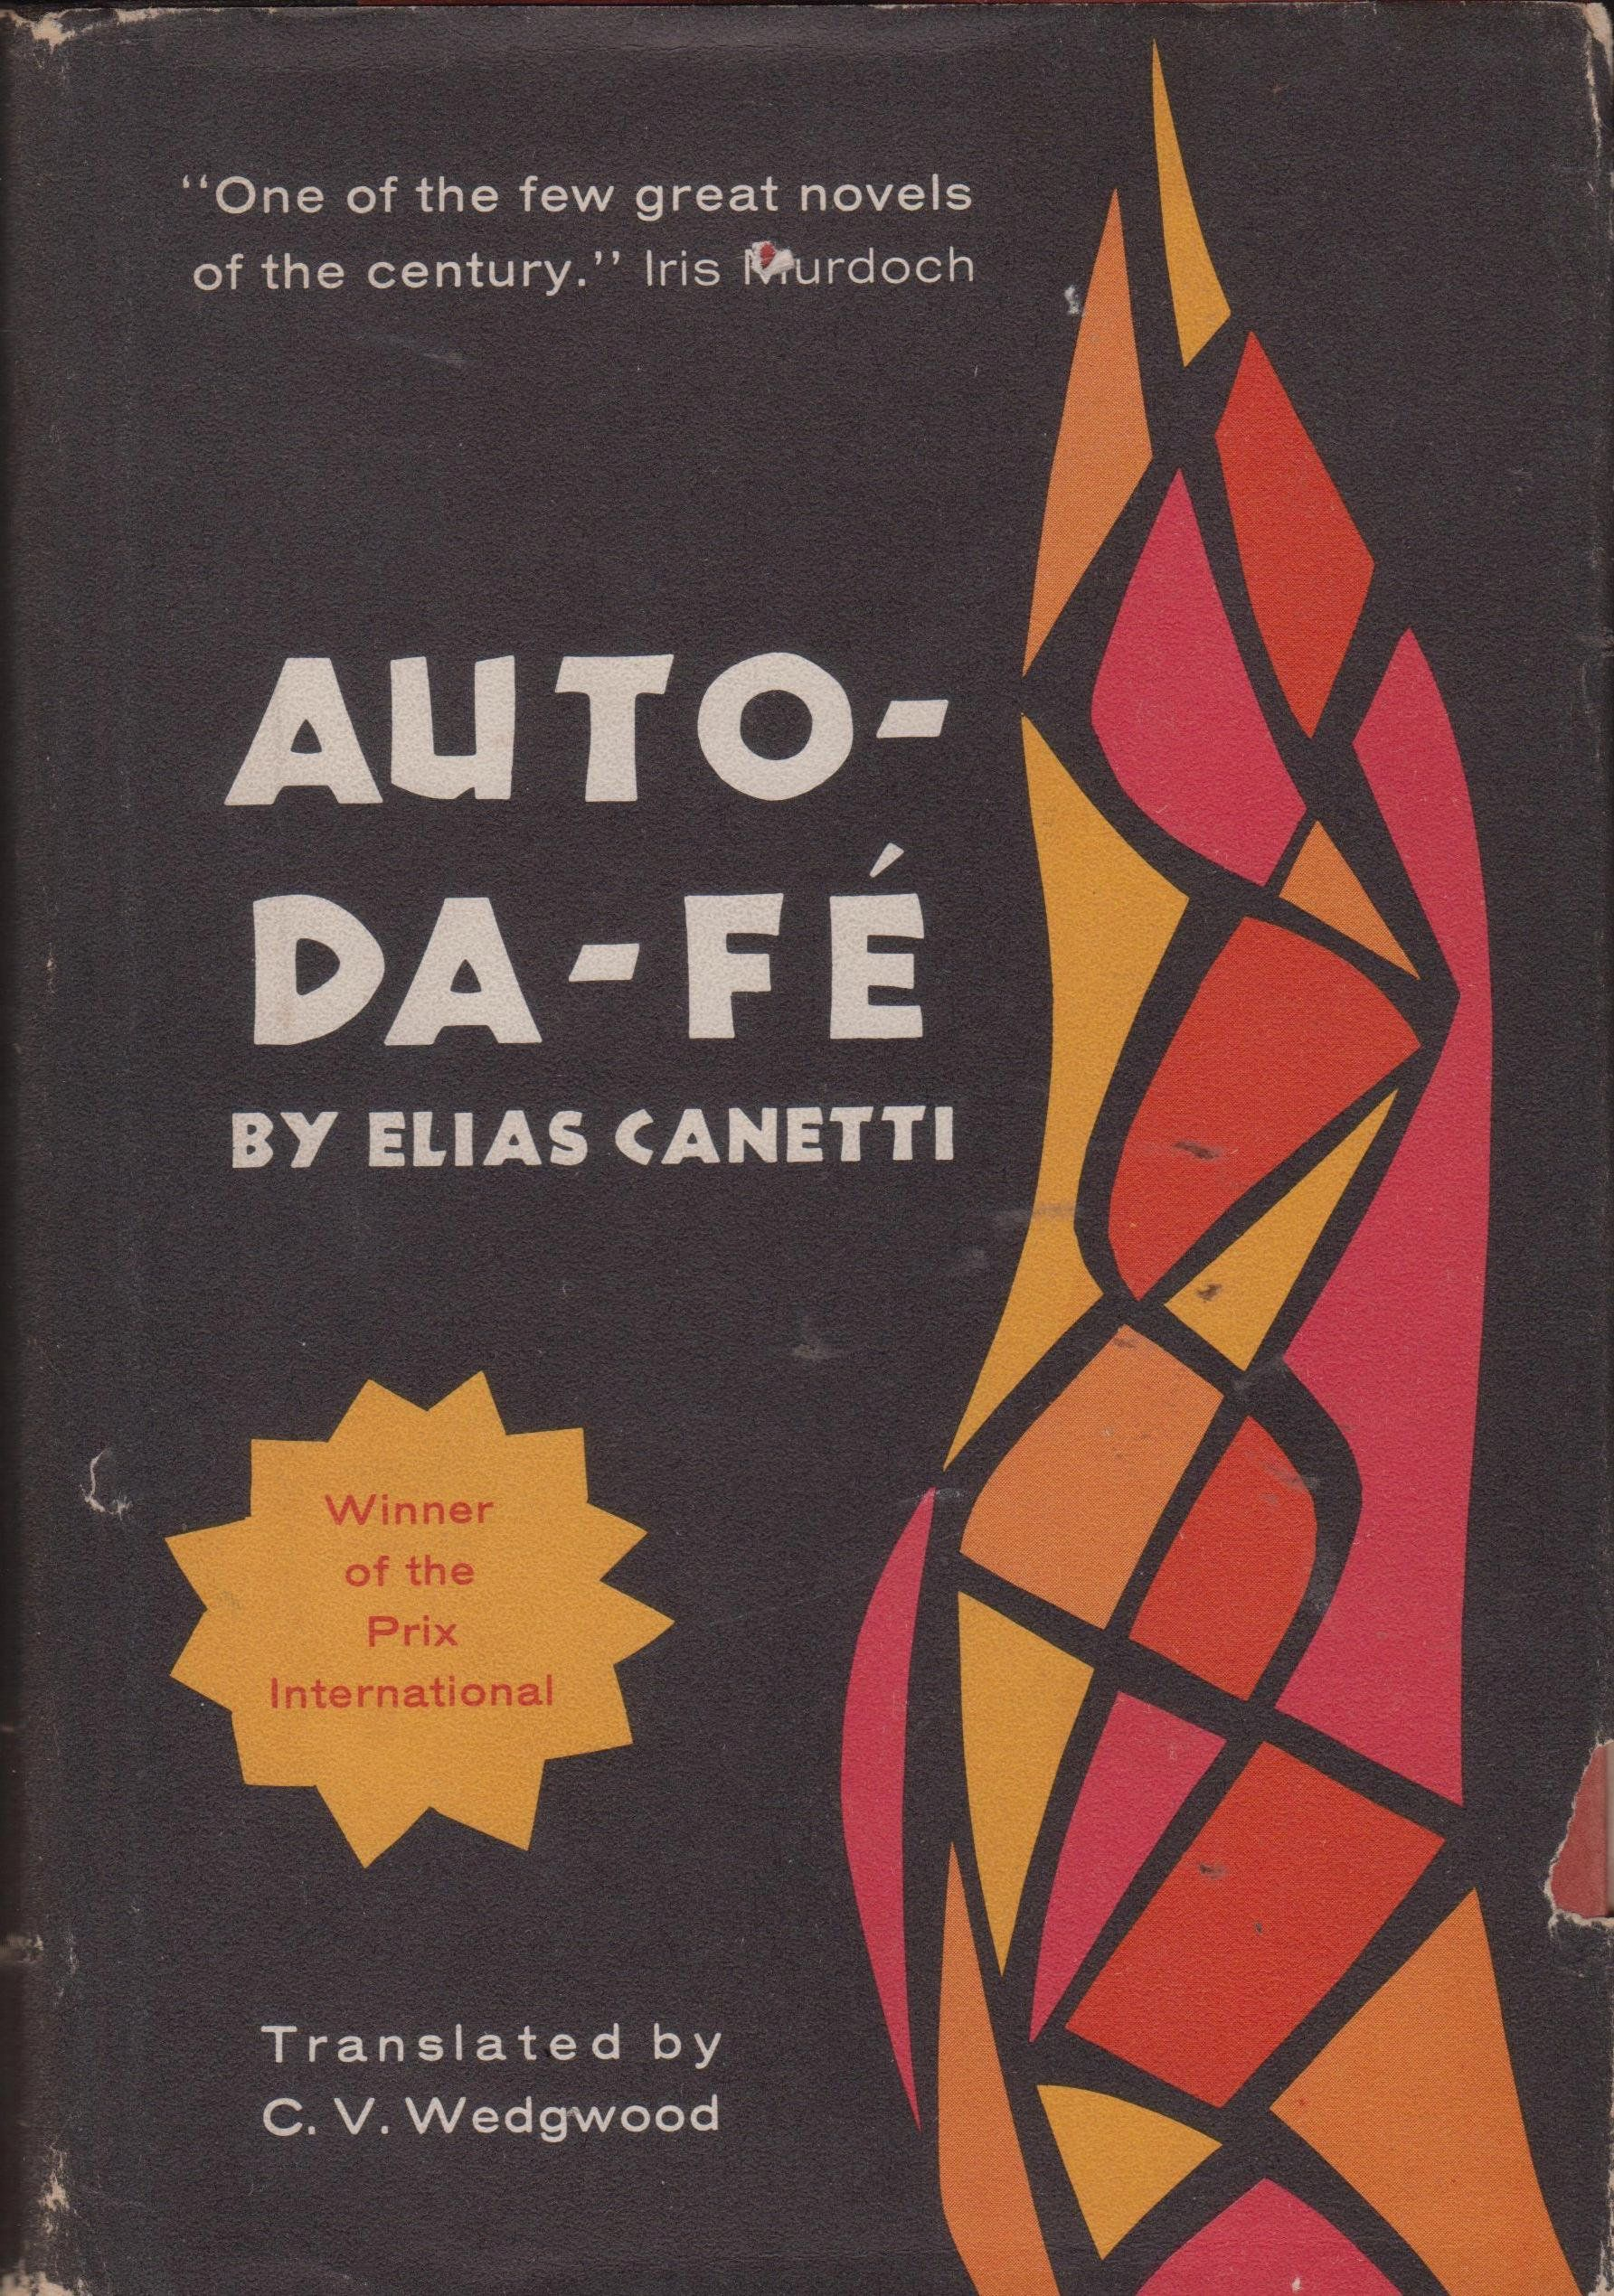 Elias Canetti Auto Da Fe Original Title Die Blendung The Blinding Is A 1935 Novel By Elias Canetti The Title Of The English Translation By C V Wedgwo